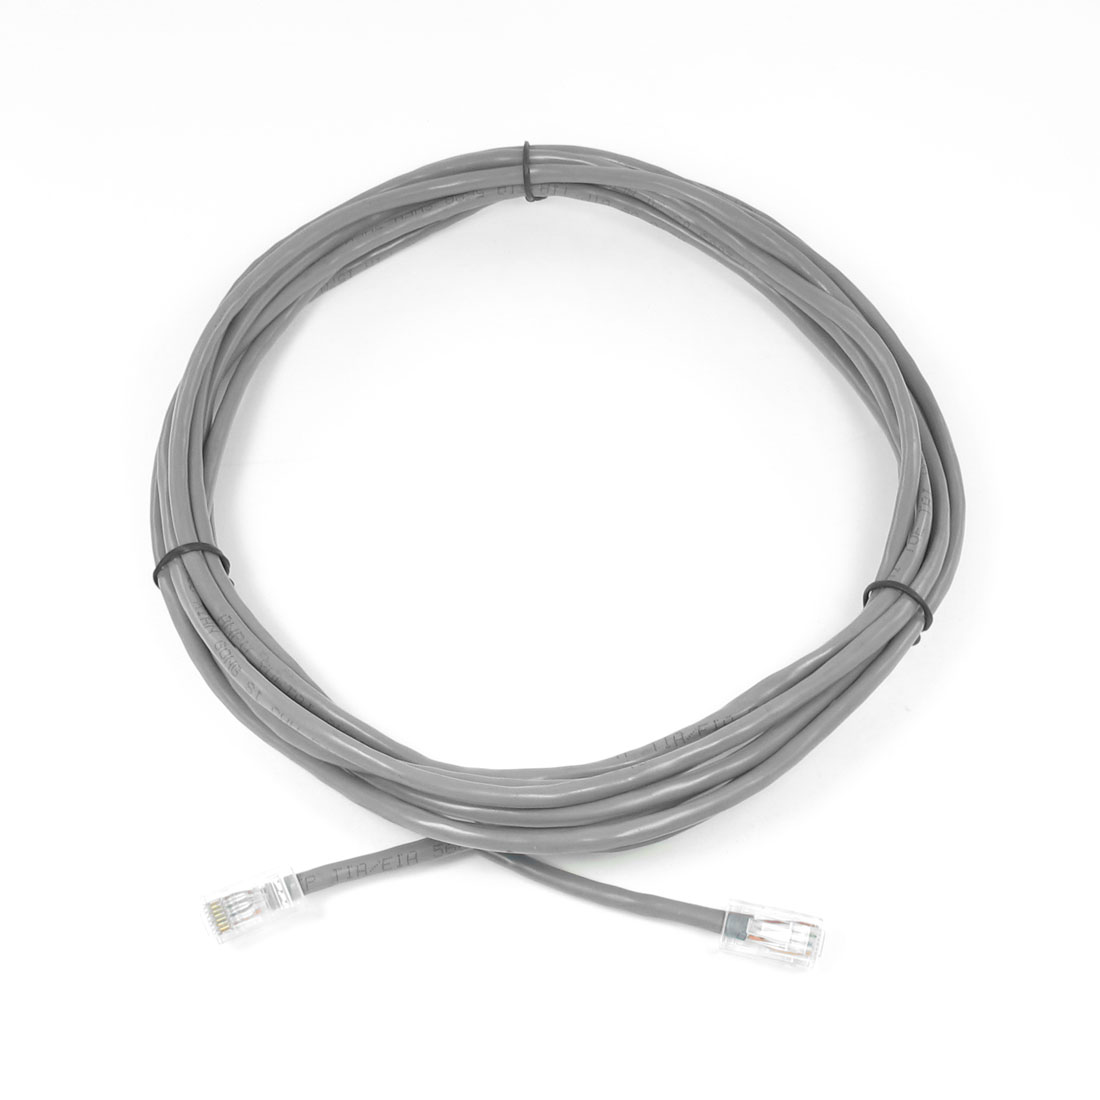 Gray RJ45 Plug Flat LAN Patch Cable 15.9ft for Ethernet Router Switch